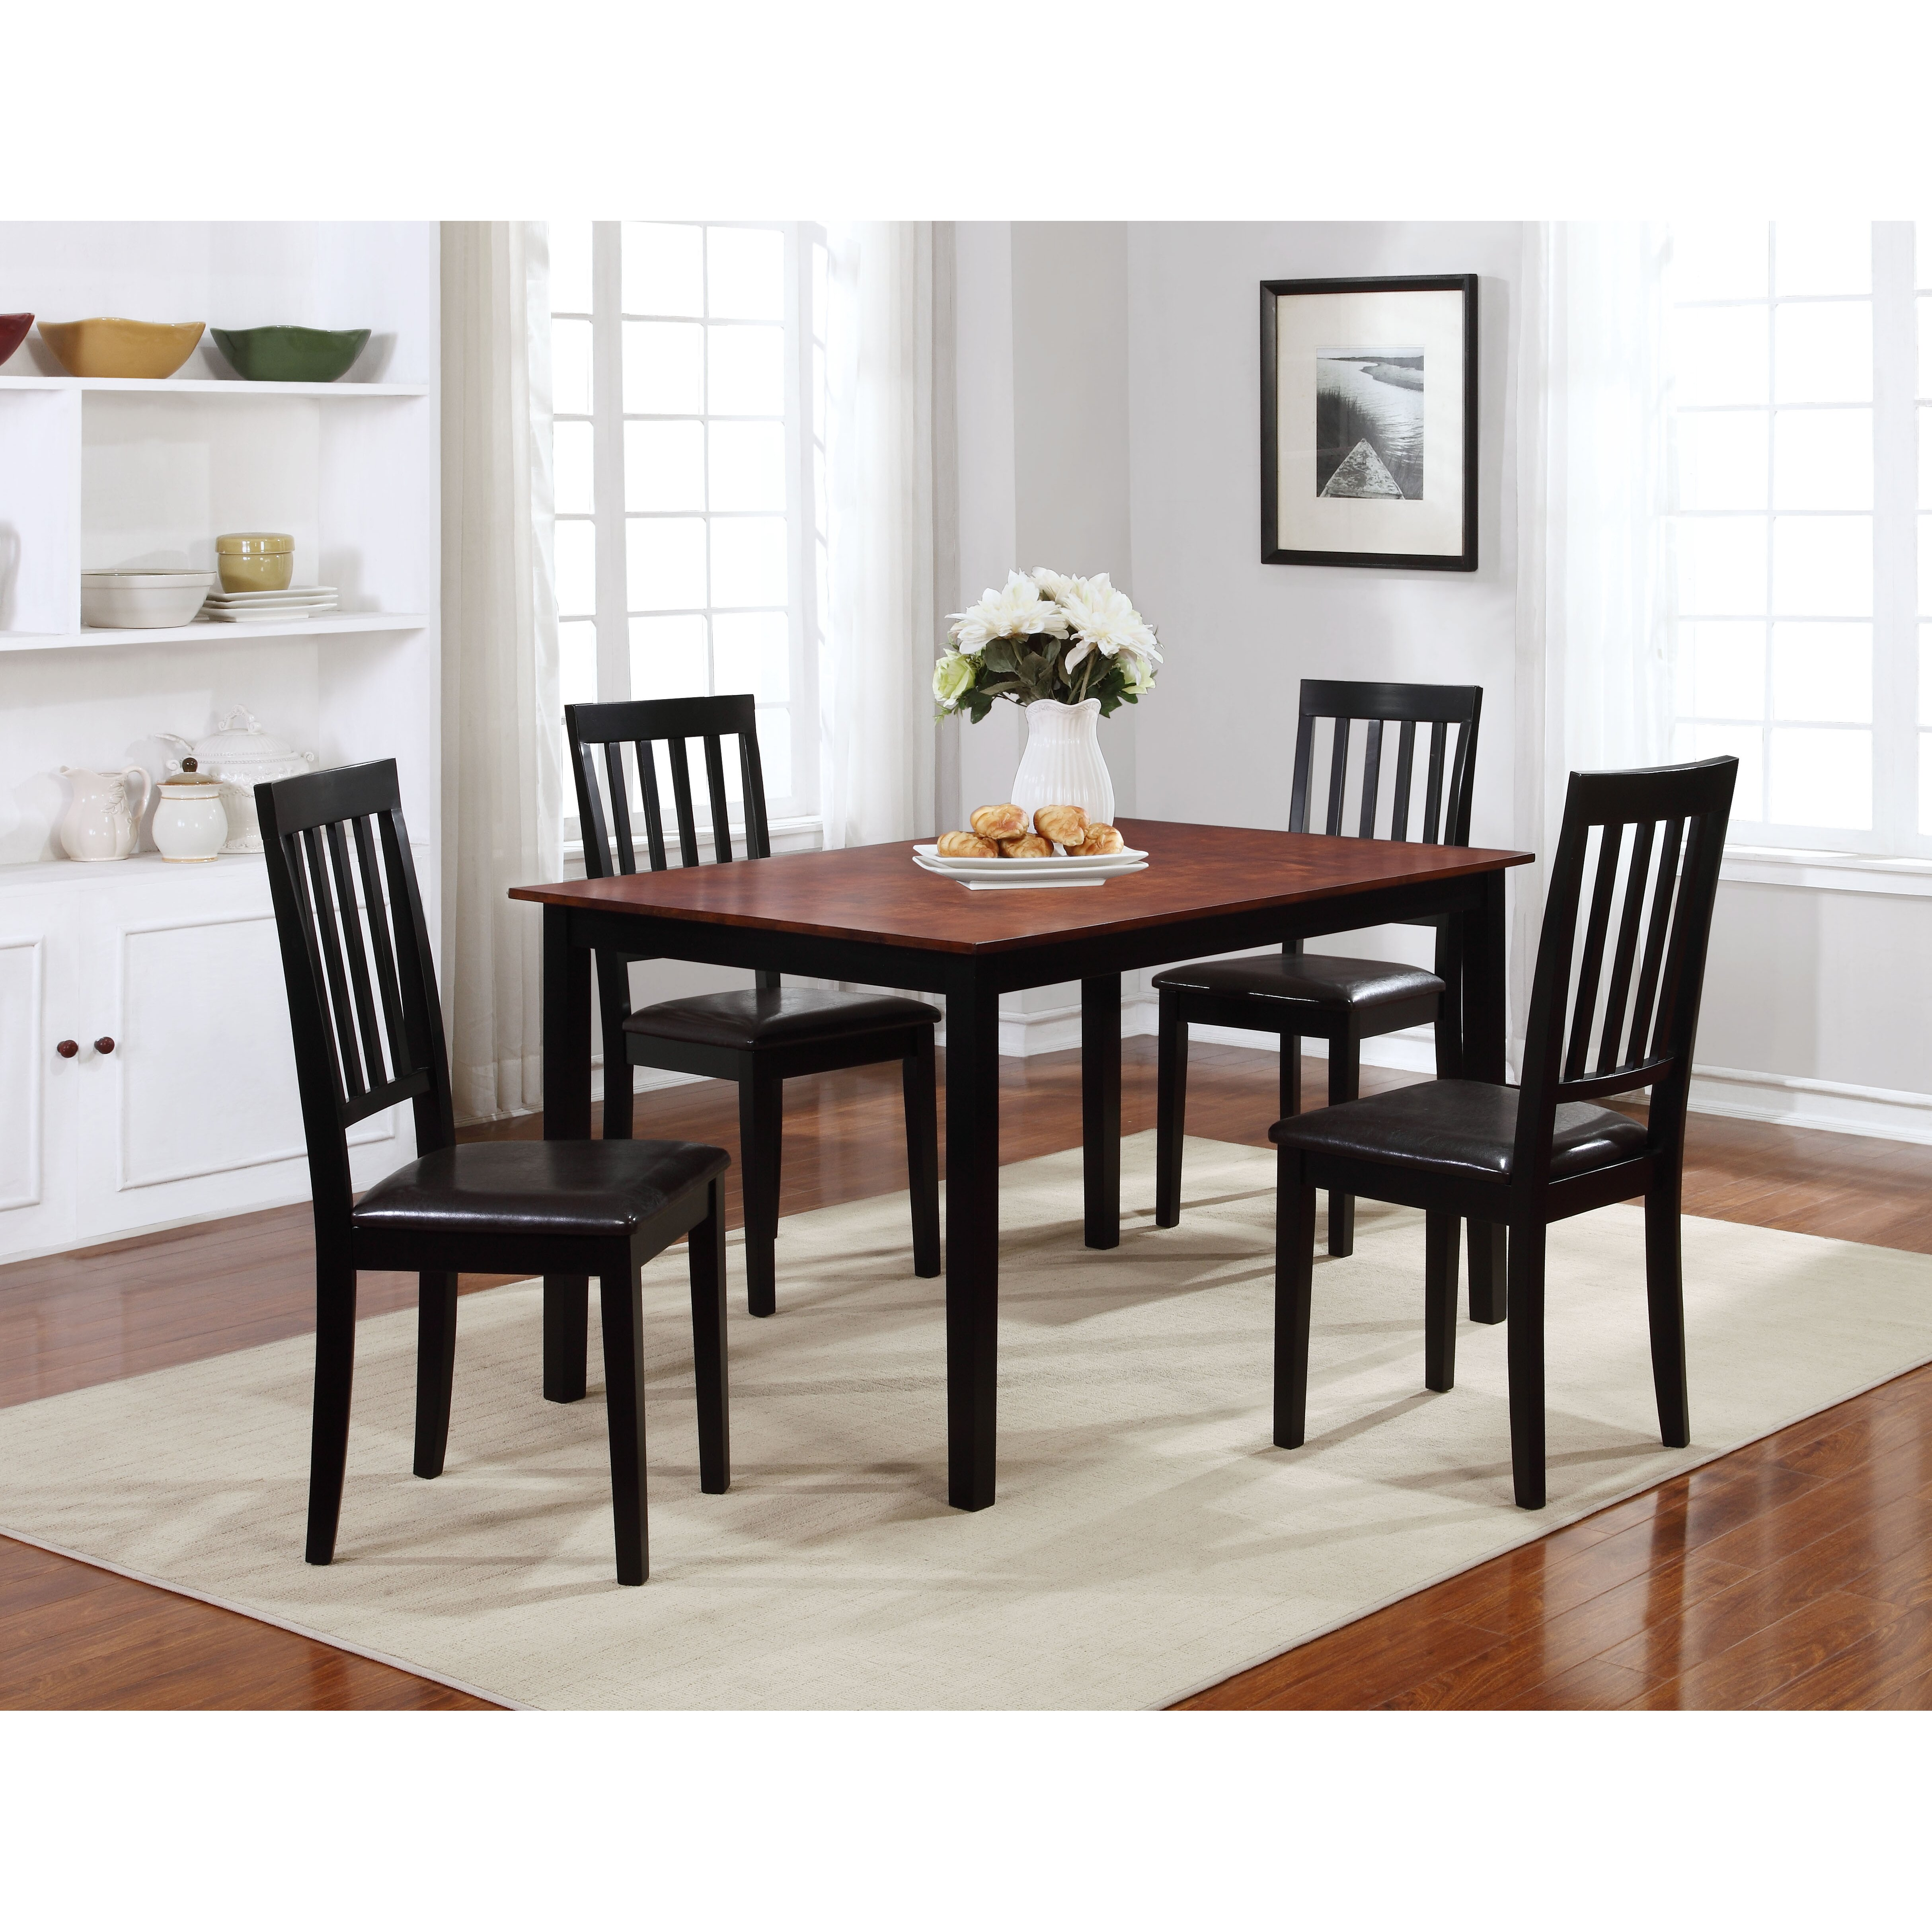 Charlton home andtree dining table reviews for Wayfair dining table